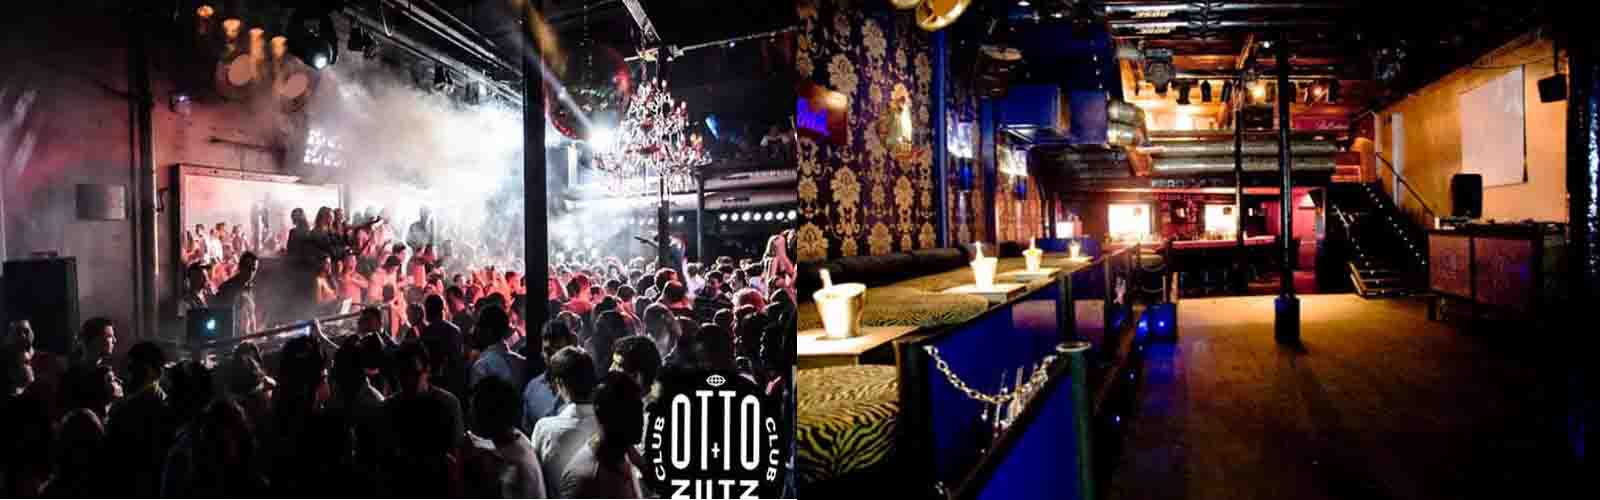 Enjoy great parties at Otto Zutz